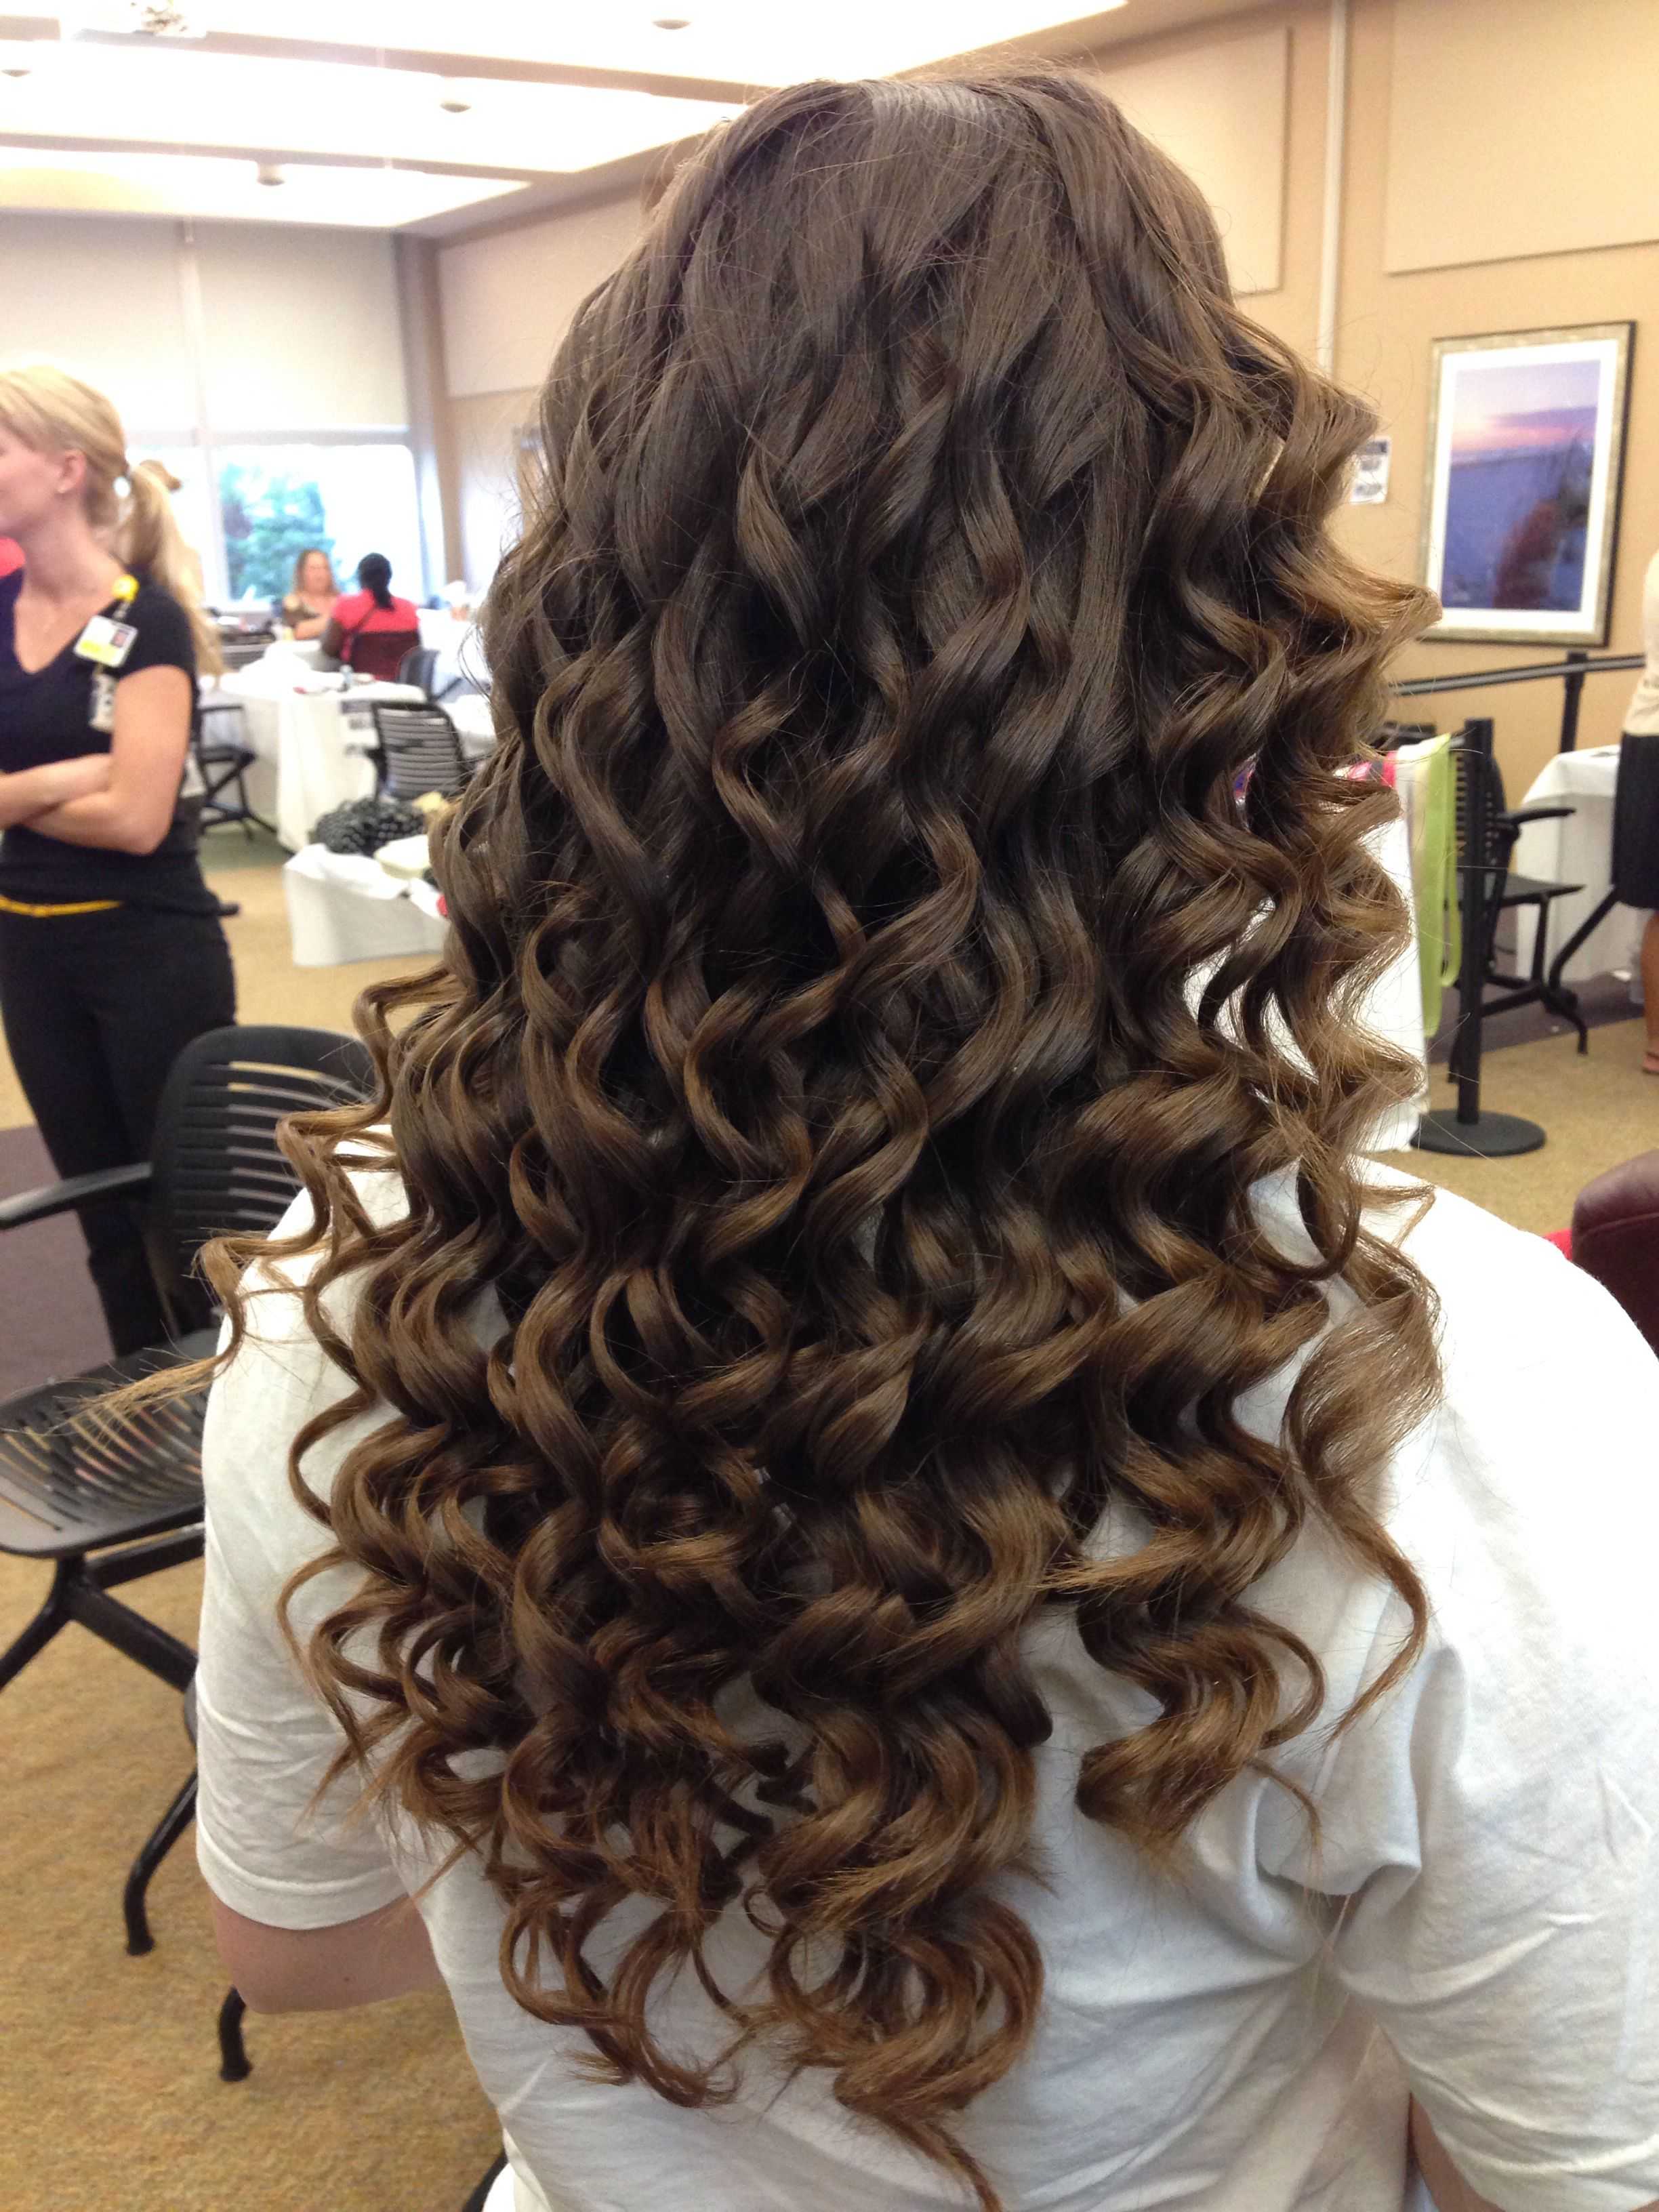 Pin By Kim Leach On Portfolio Hair Styles Wand Hairstyles Curly Hair Styles